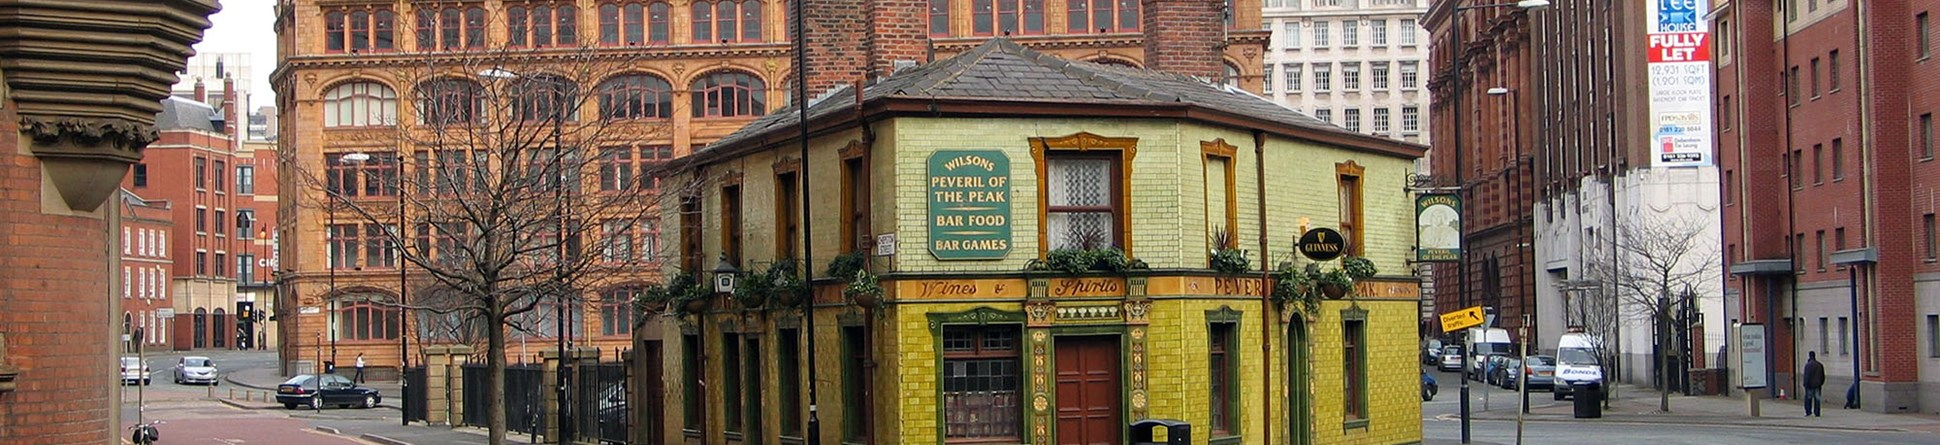 Exterior photo of the green tiled front of the Peveril of the Peak pub.